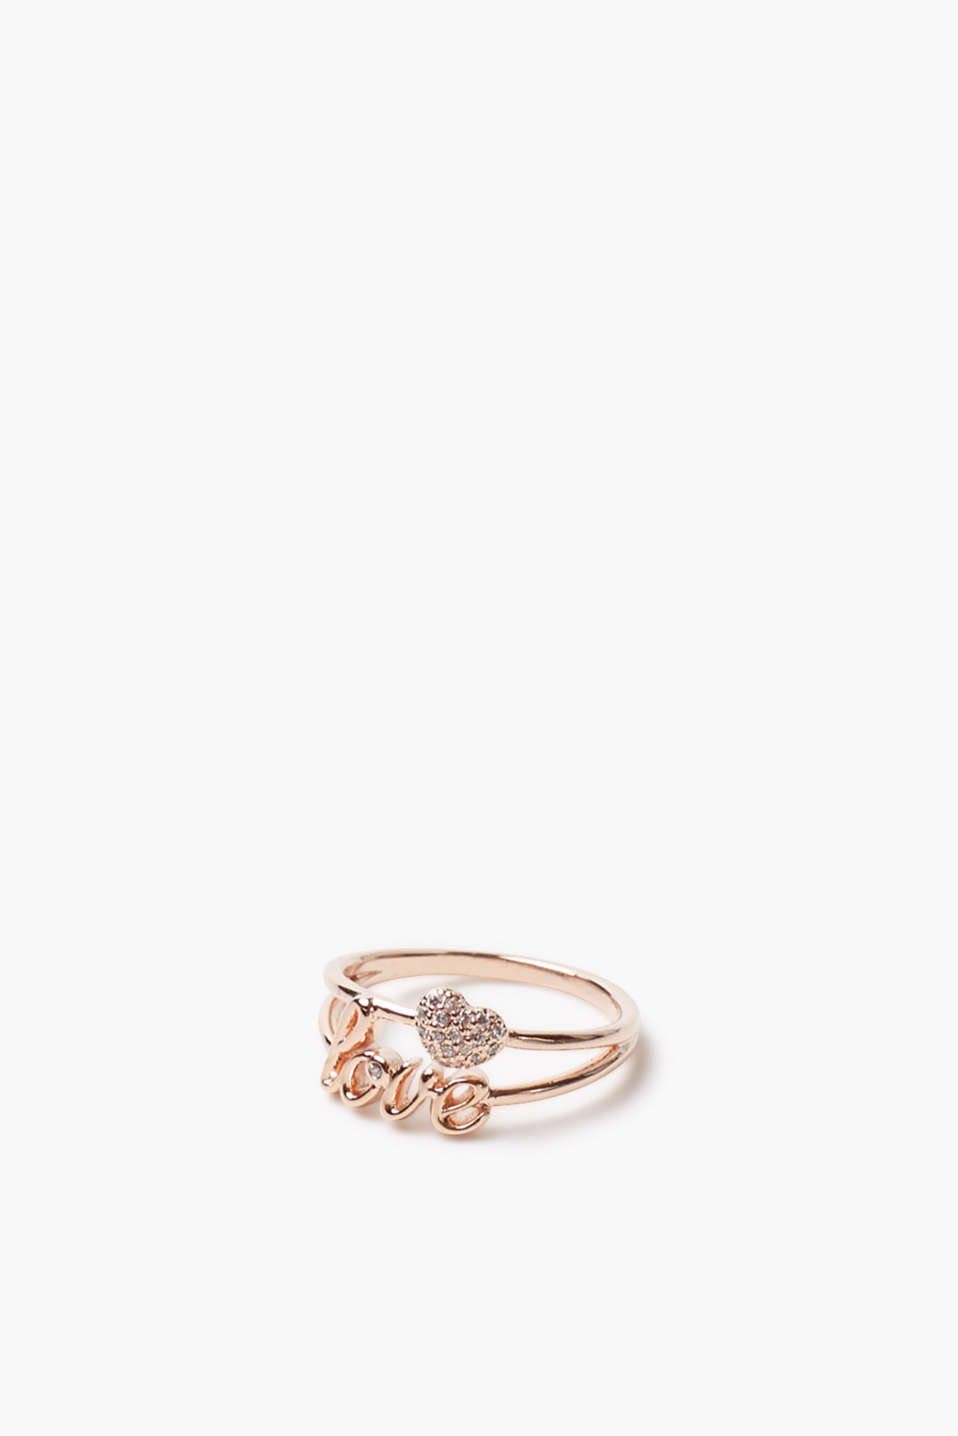 Esprit - Love ring, rose gold plating, zirconia